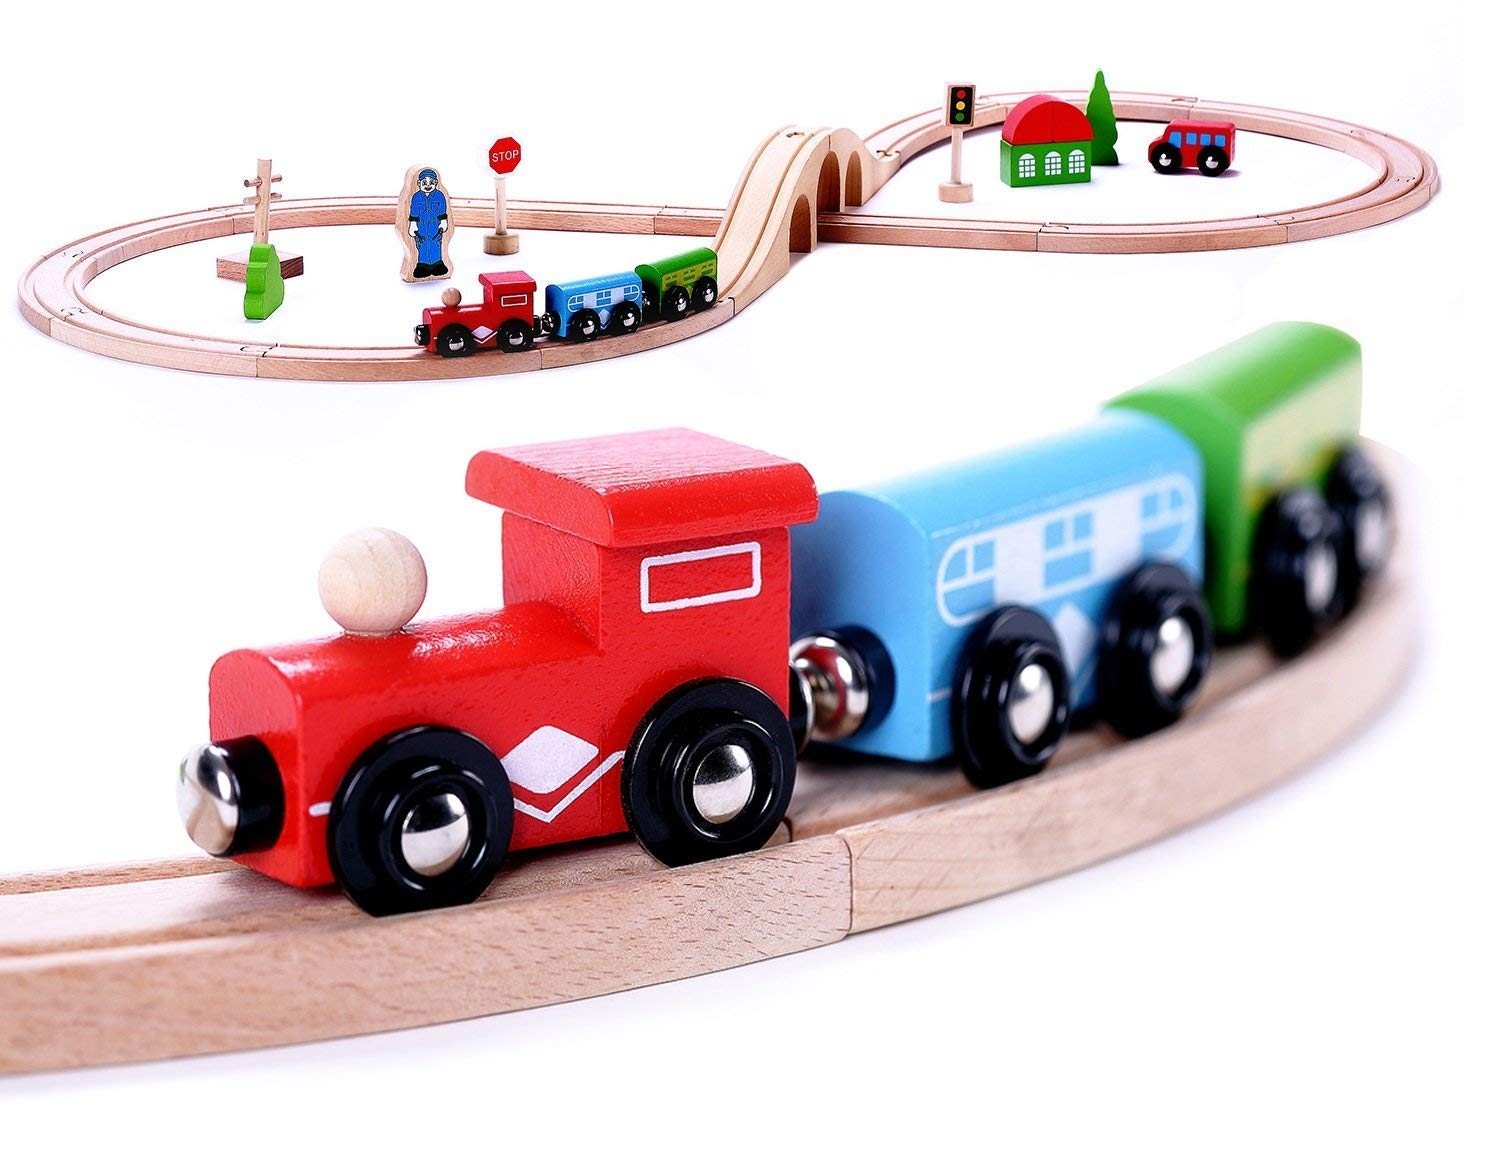 Cubbie Lee Premium Wooden Train Set Toy Double-Sided Train Tracks, Magnetic Trains Cars & Accessories for 3 Year Olds and Up - Compatible w/ Thomas Tank Engine and Other Major Brands